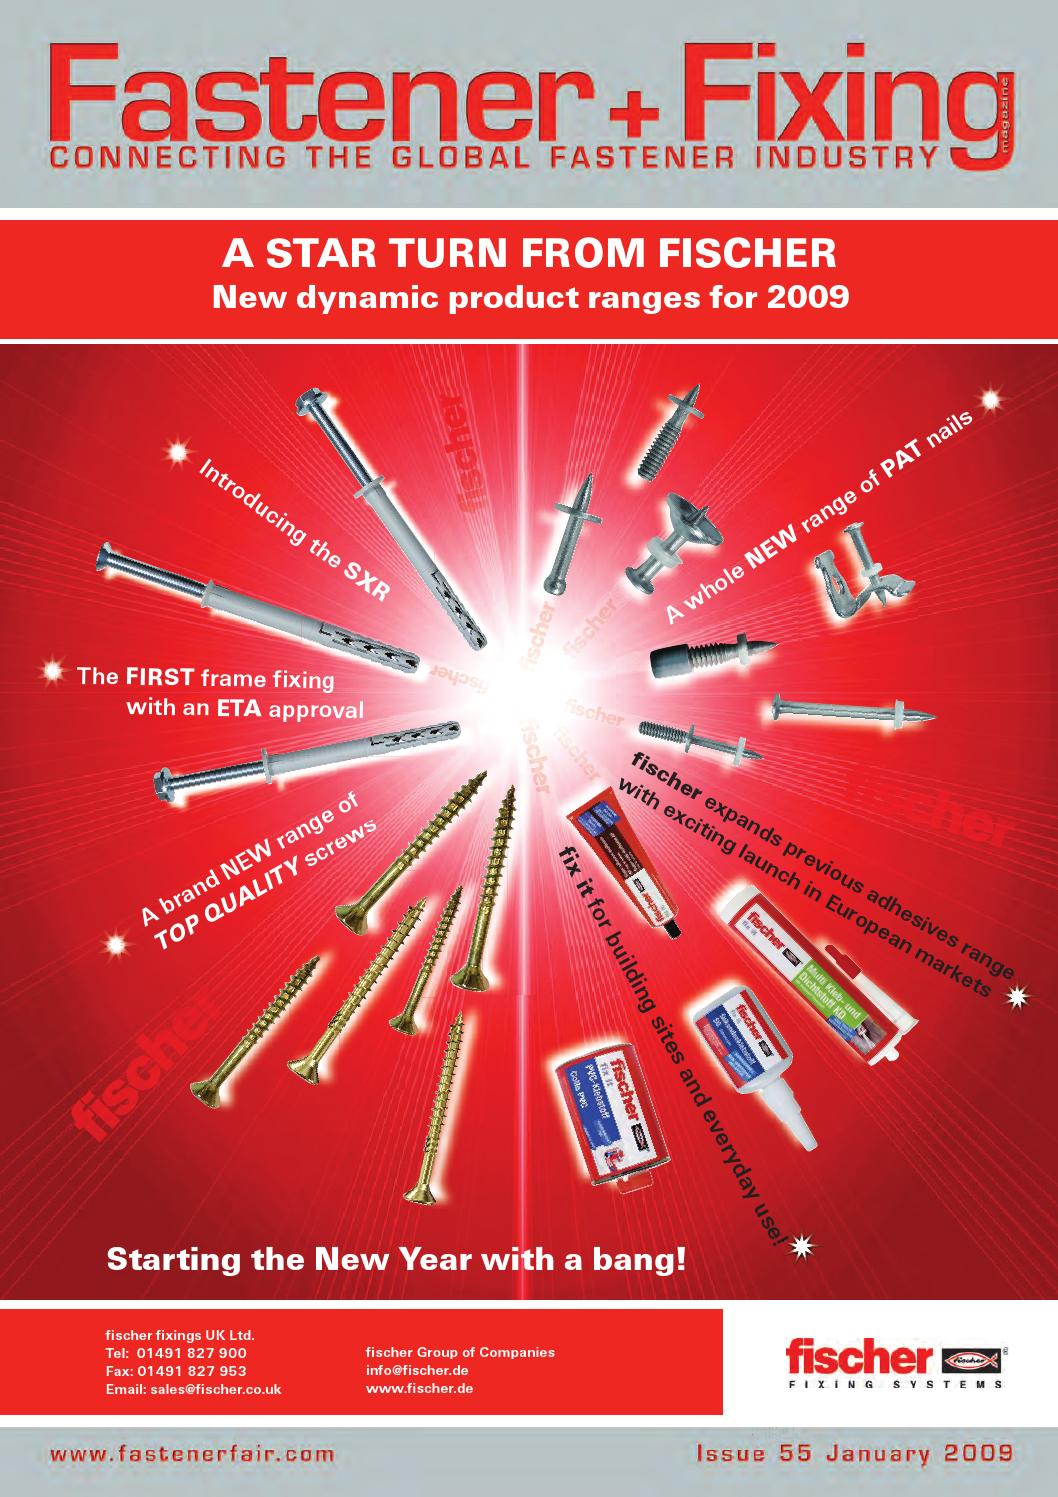 Fastener Fixing Magazine 55 By Issuu Box Switch On Furthermore Emka Keys In Addition Circuit Breaker